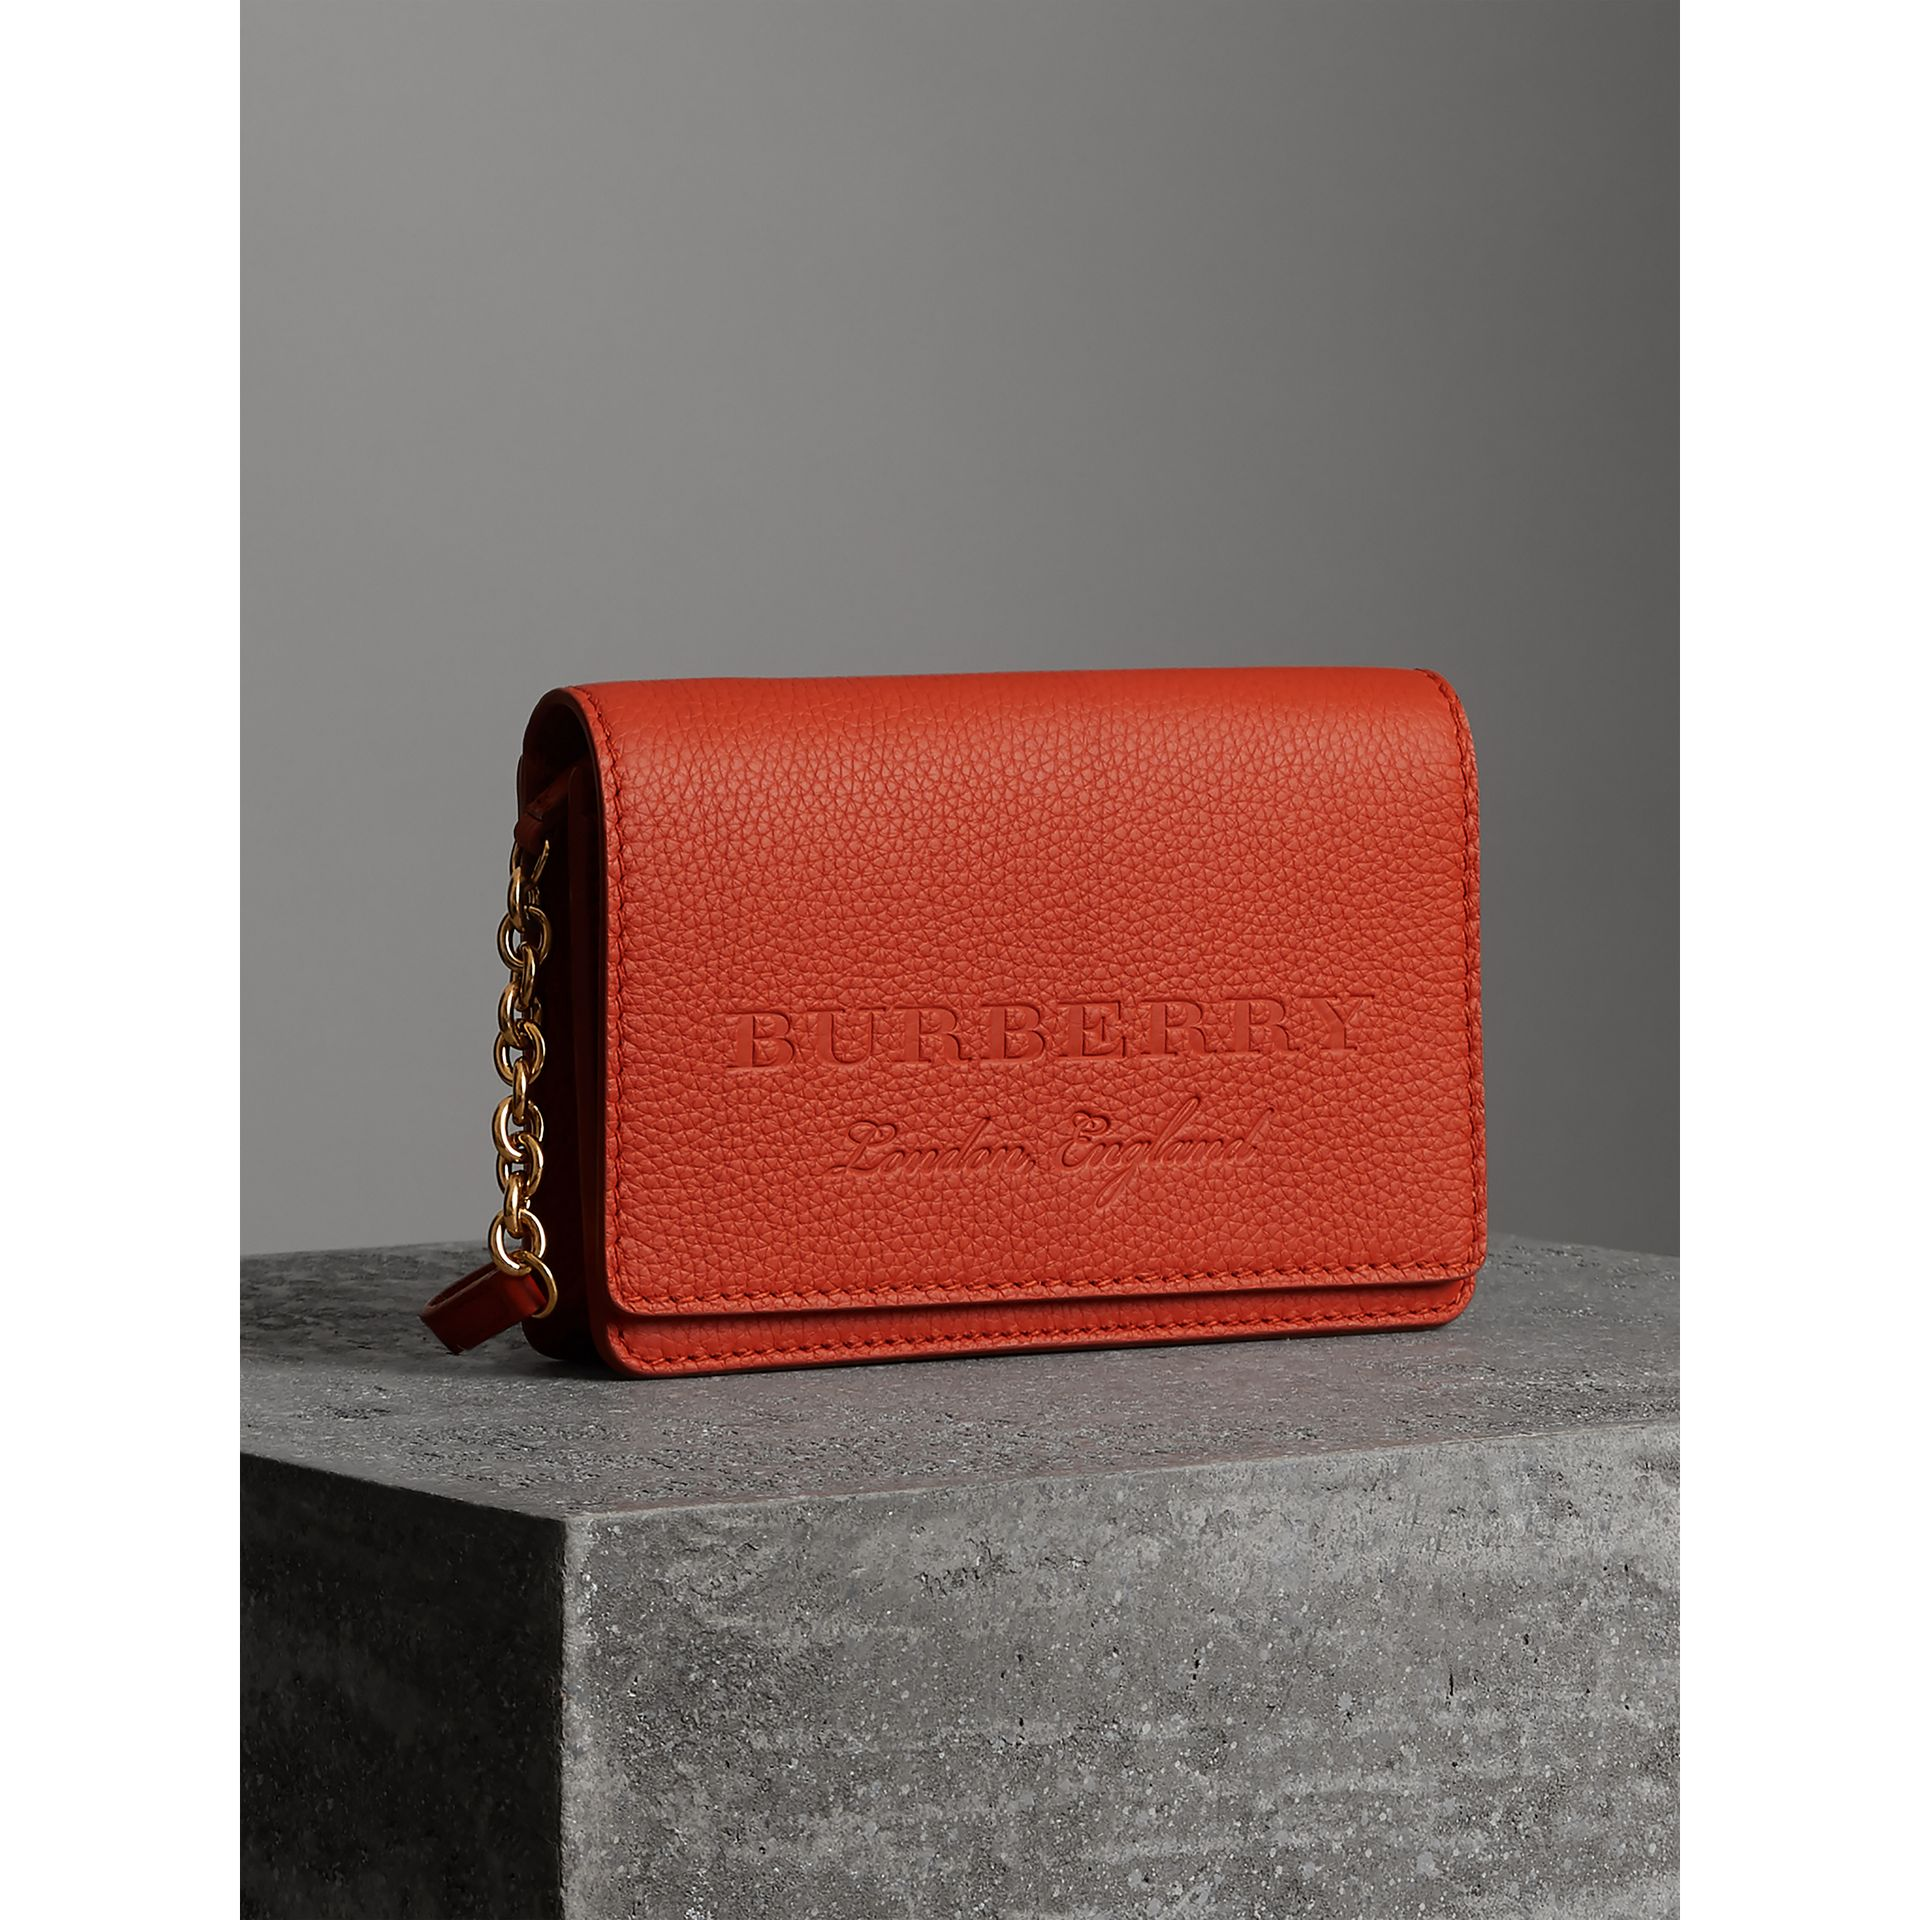 Embossed Leather Wallet with Detachable Strap in Dark Clementine - Women | Burberry - gallery image 4